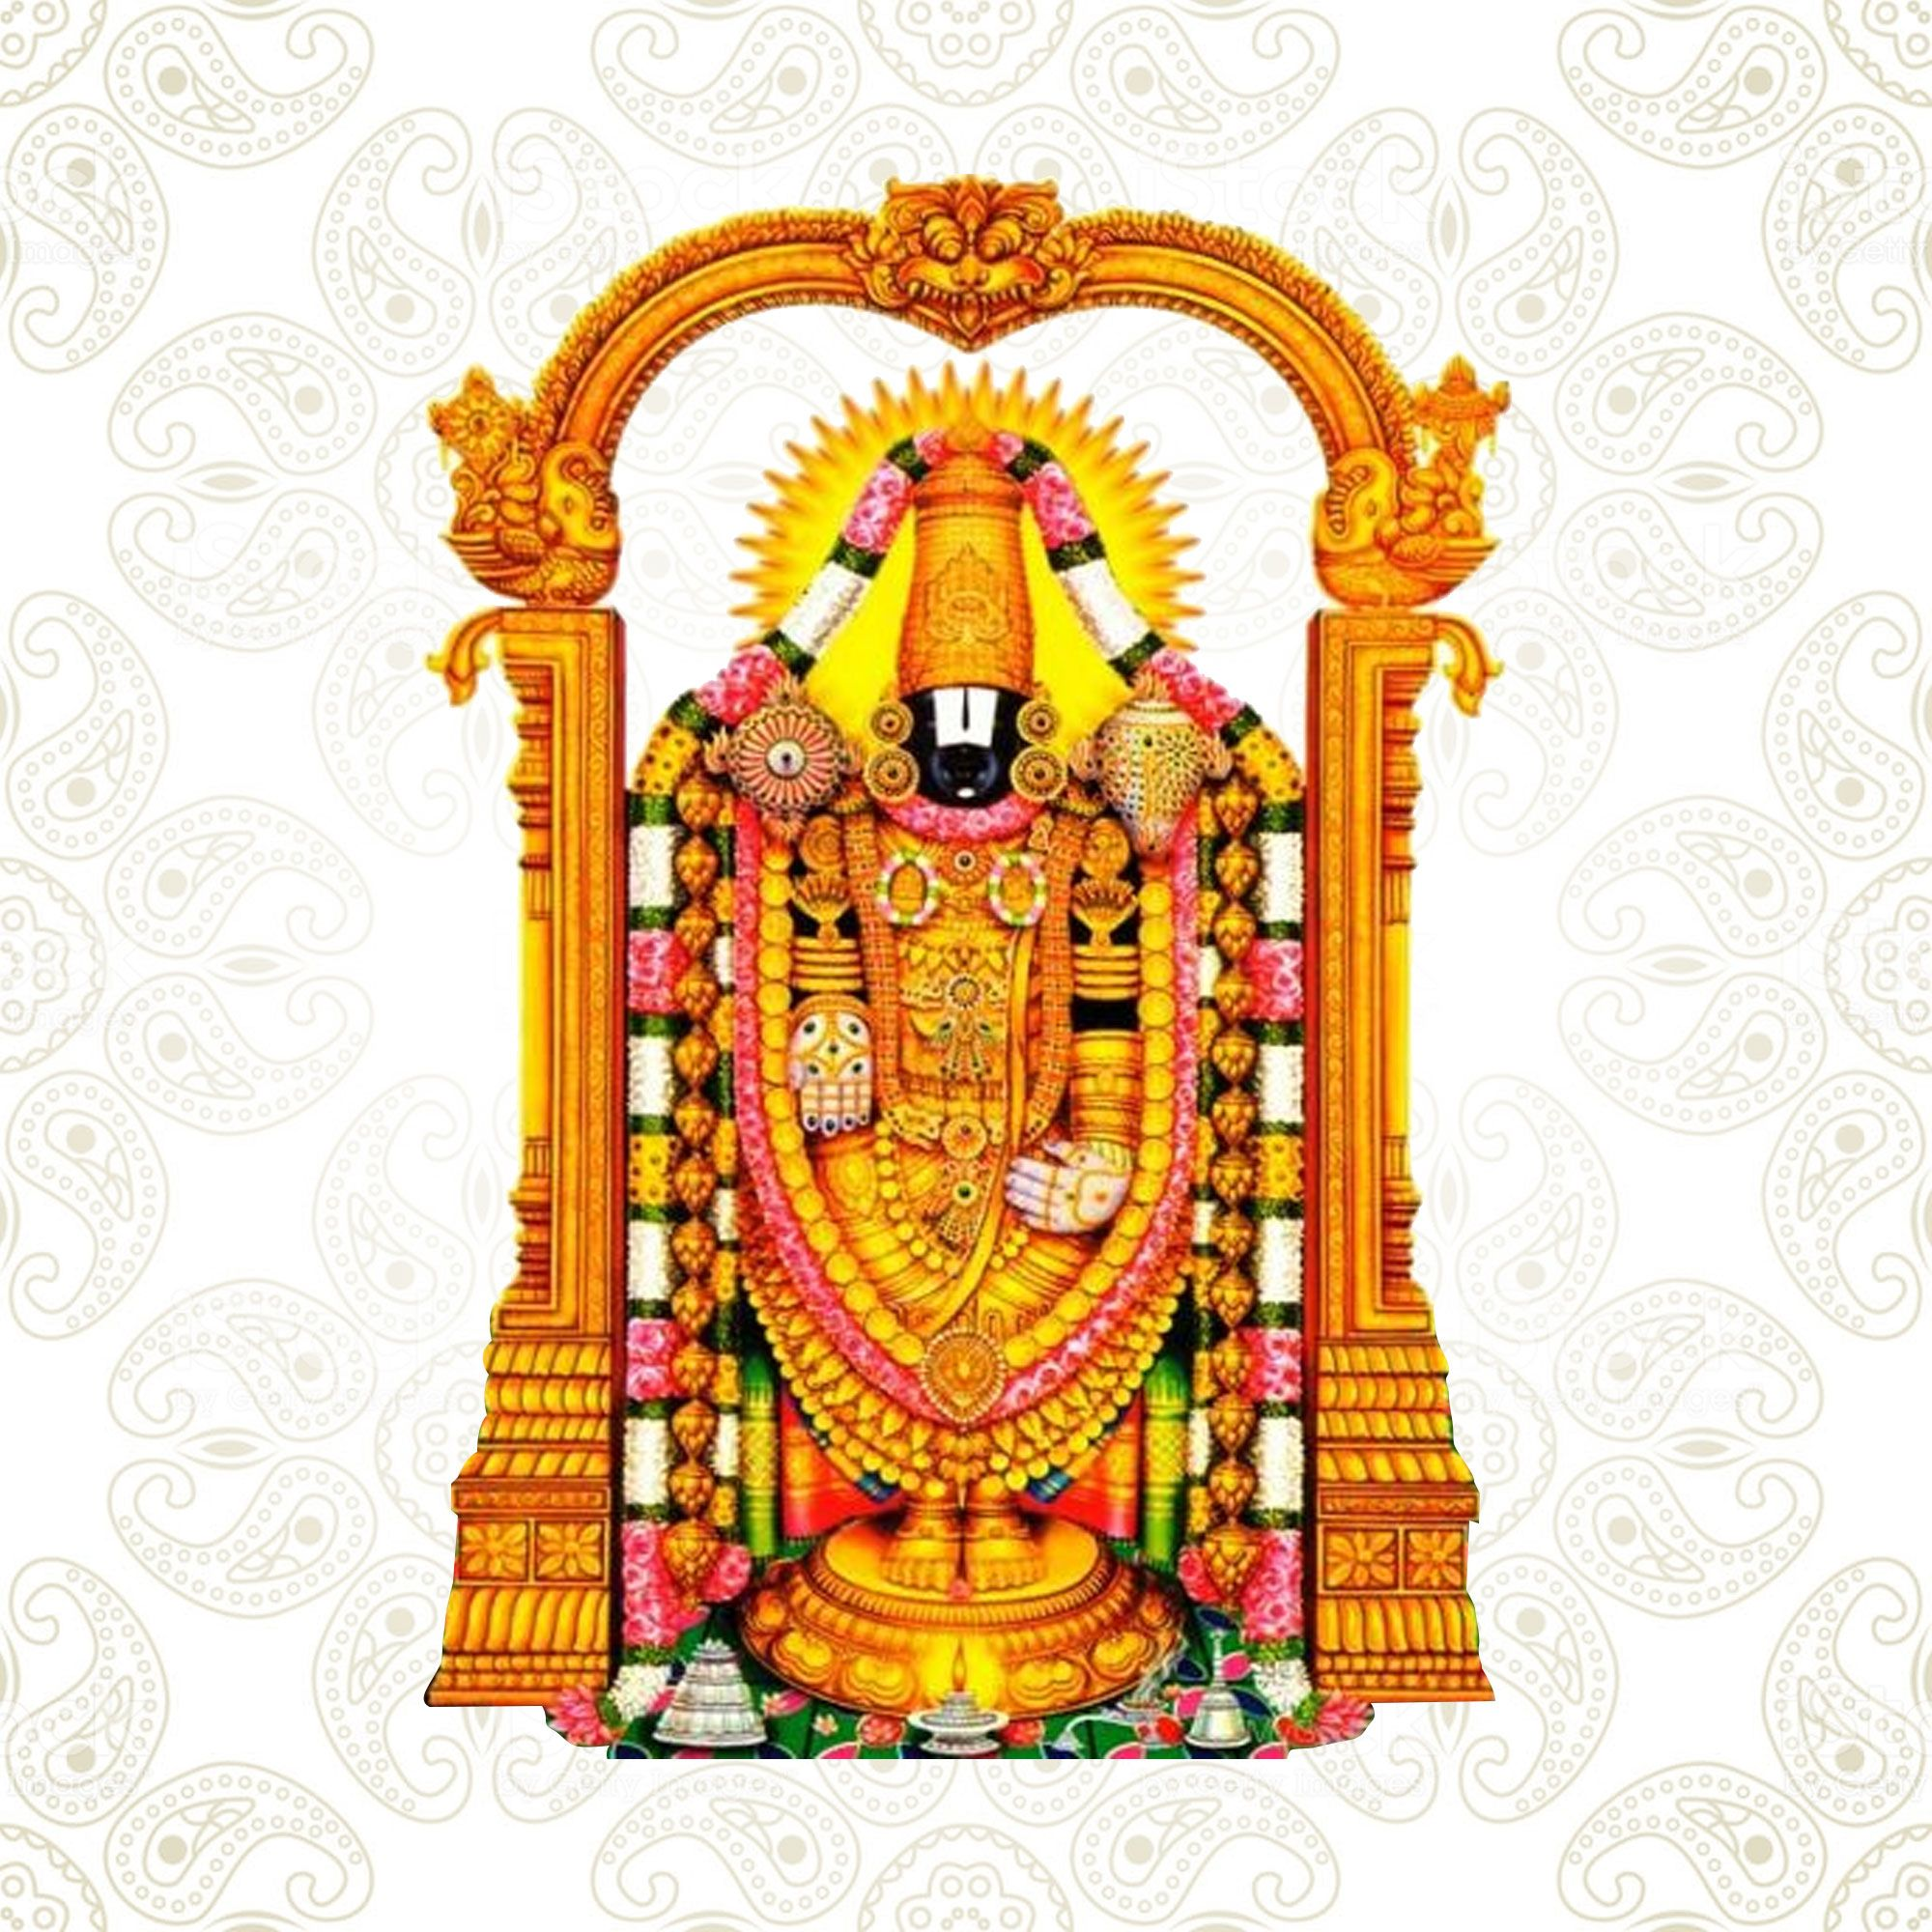 venkateswara swamy images and hd wallpaper for mobile in 2020 wallpaper image hd wallpaper 4k venkateswara swamy images and hd